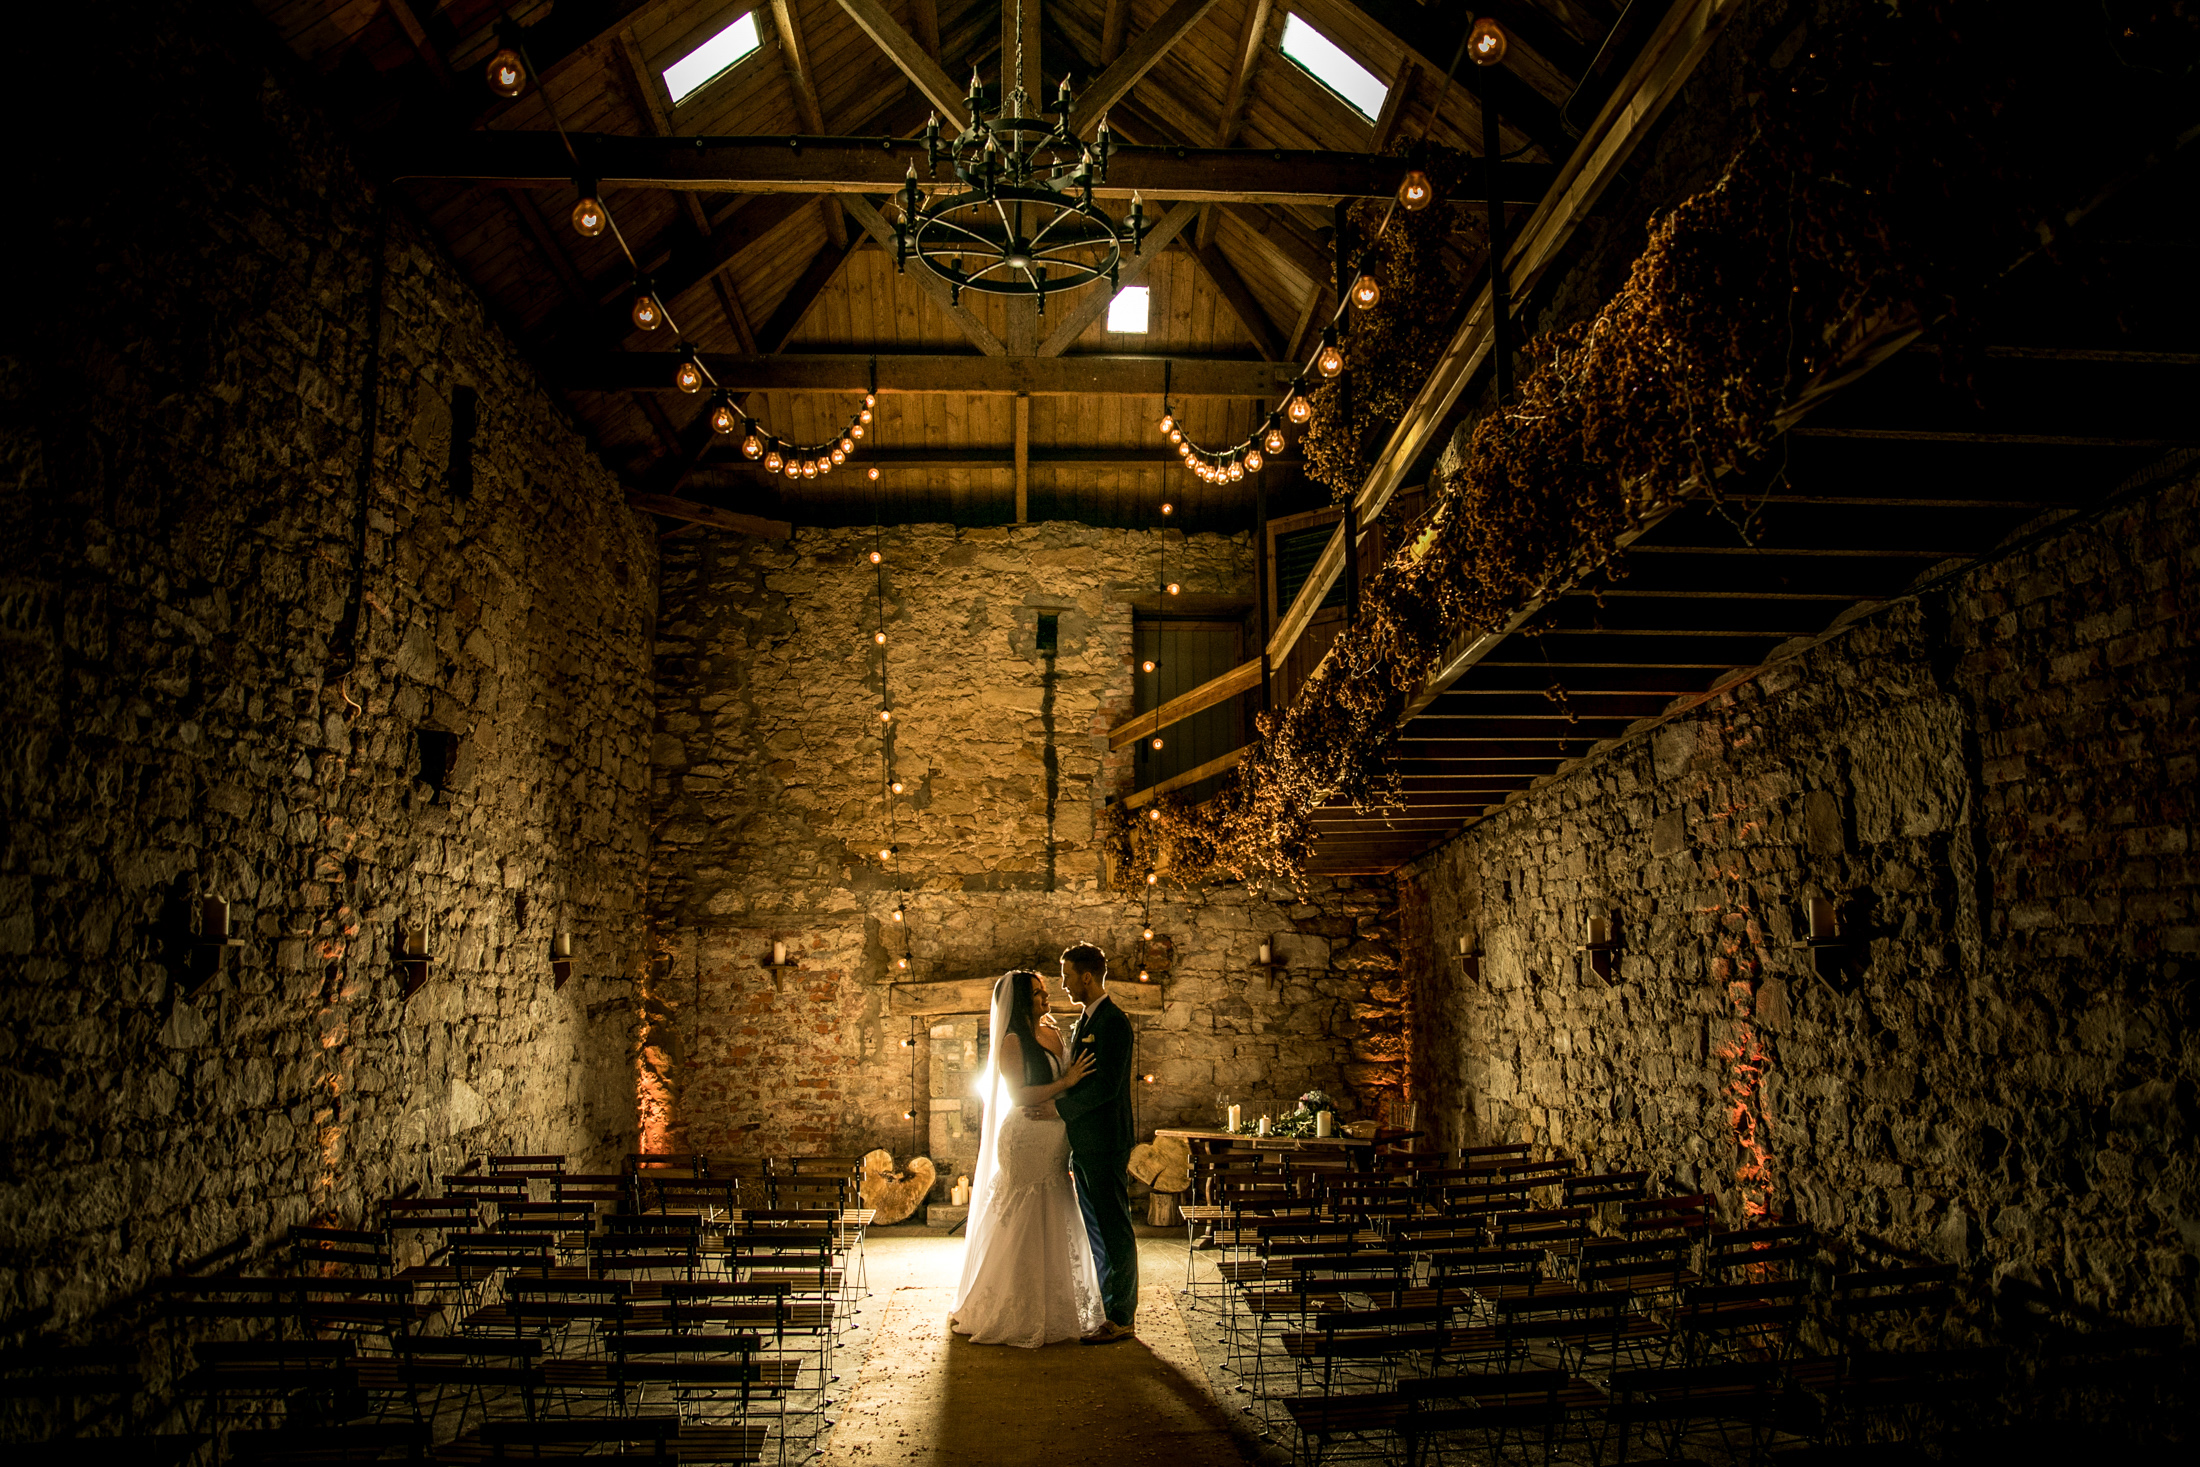 doxford barns wedding photos-58.jpg